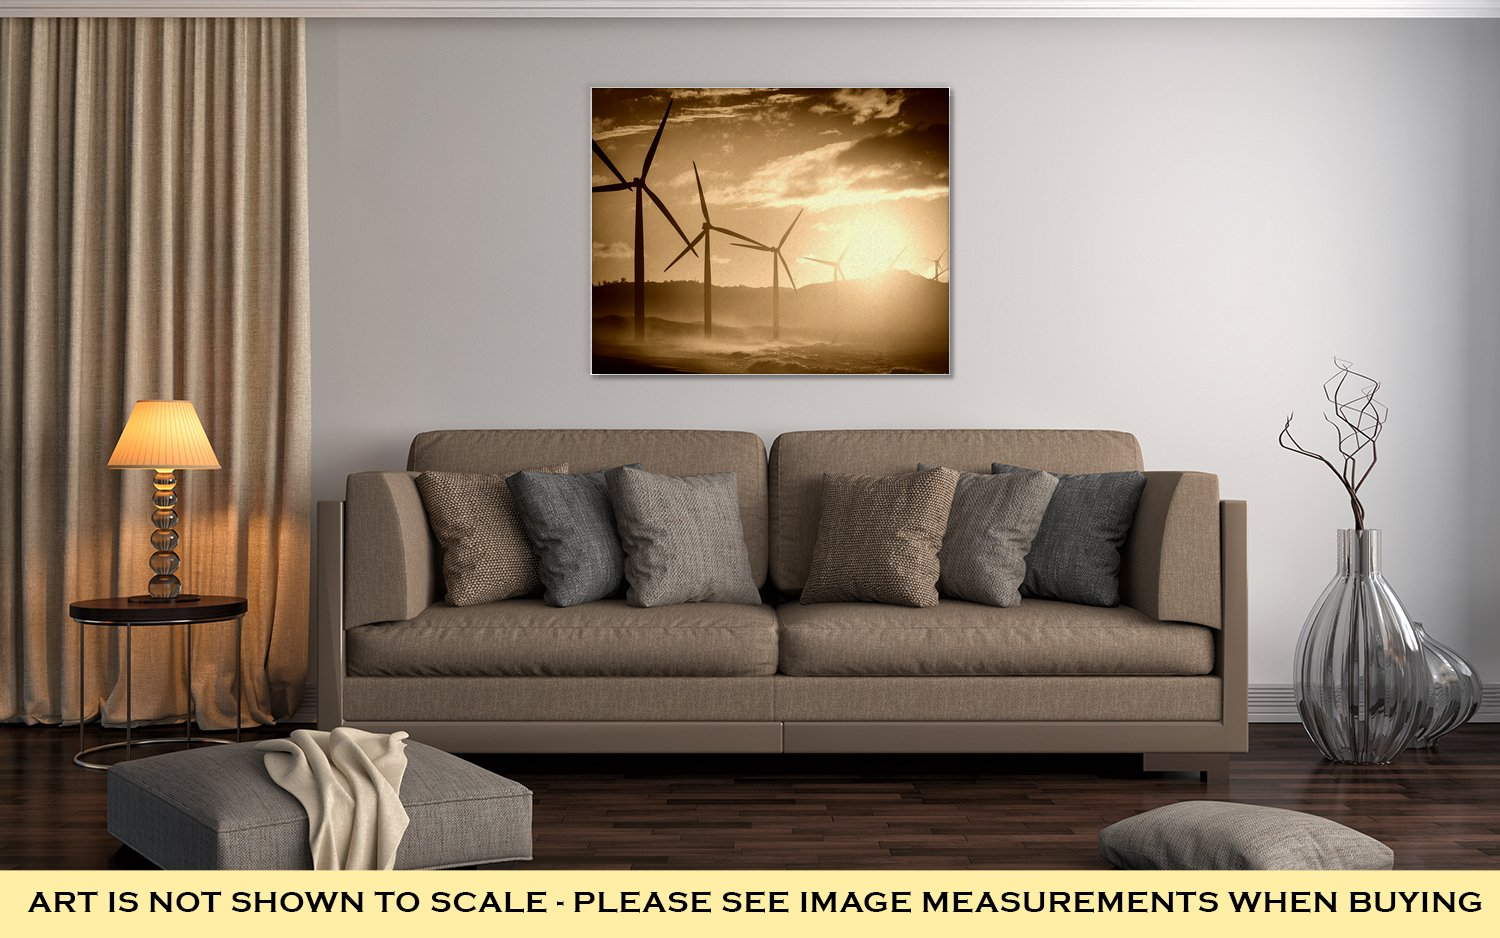 Ashley Canvas Wind Turbine Power Generators Silhouettes At Ocean Coastline At Sunset, Wall Art Home Decor, Ready to Hang, Sepia, 16x20, AG5858548 by Ashley Canvas (Image #1)